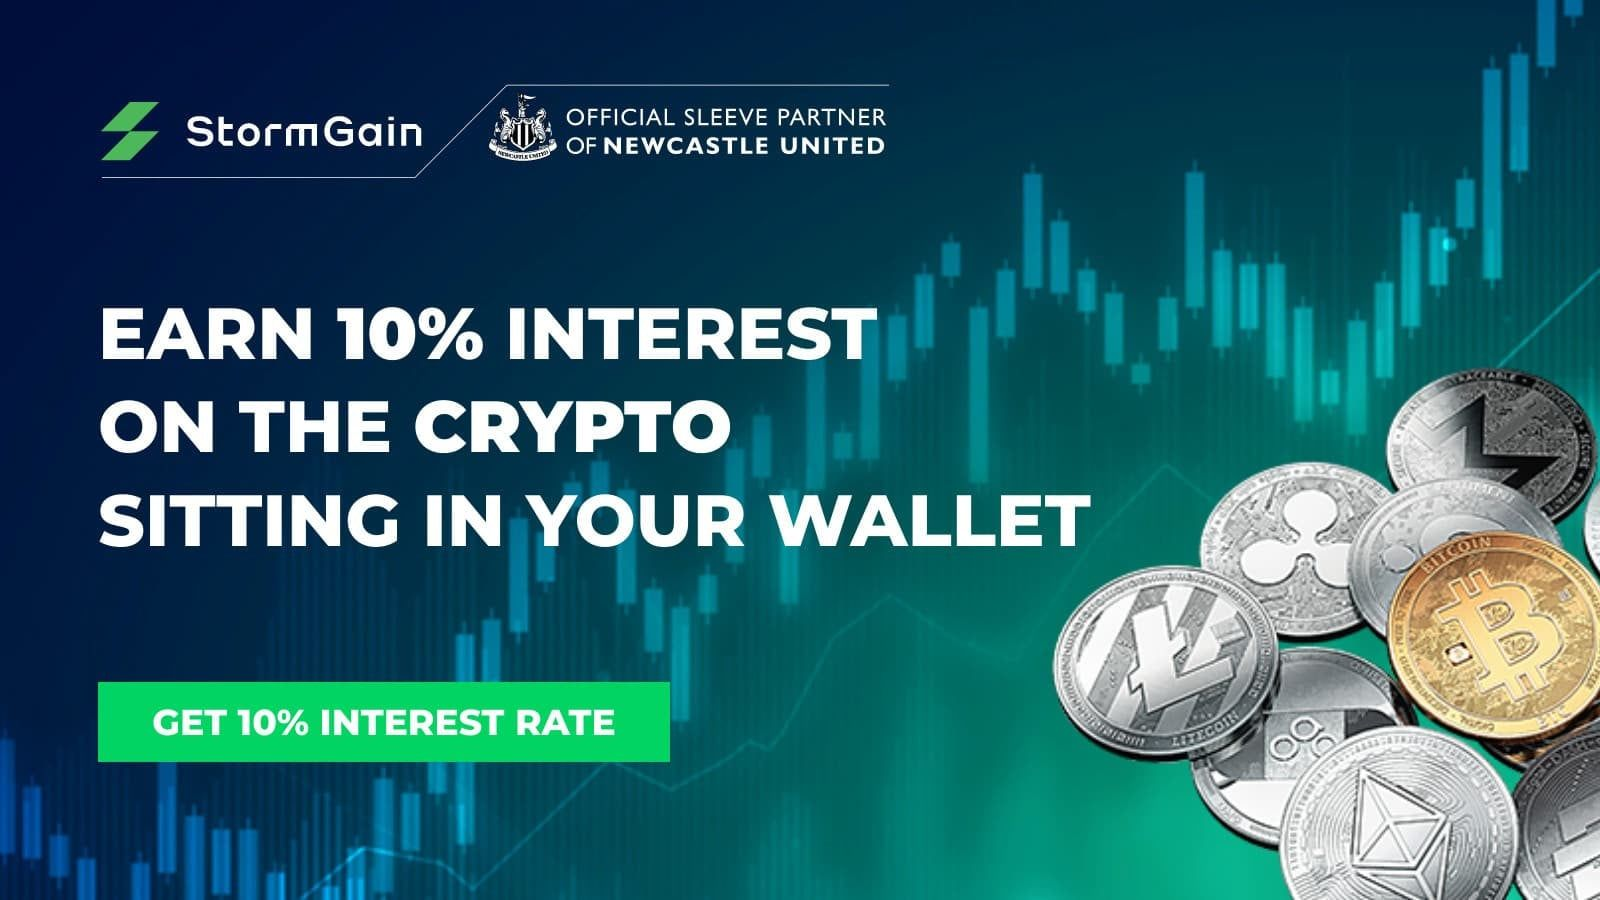 StormGain's interest program is the most generous in the market